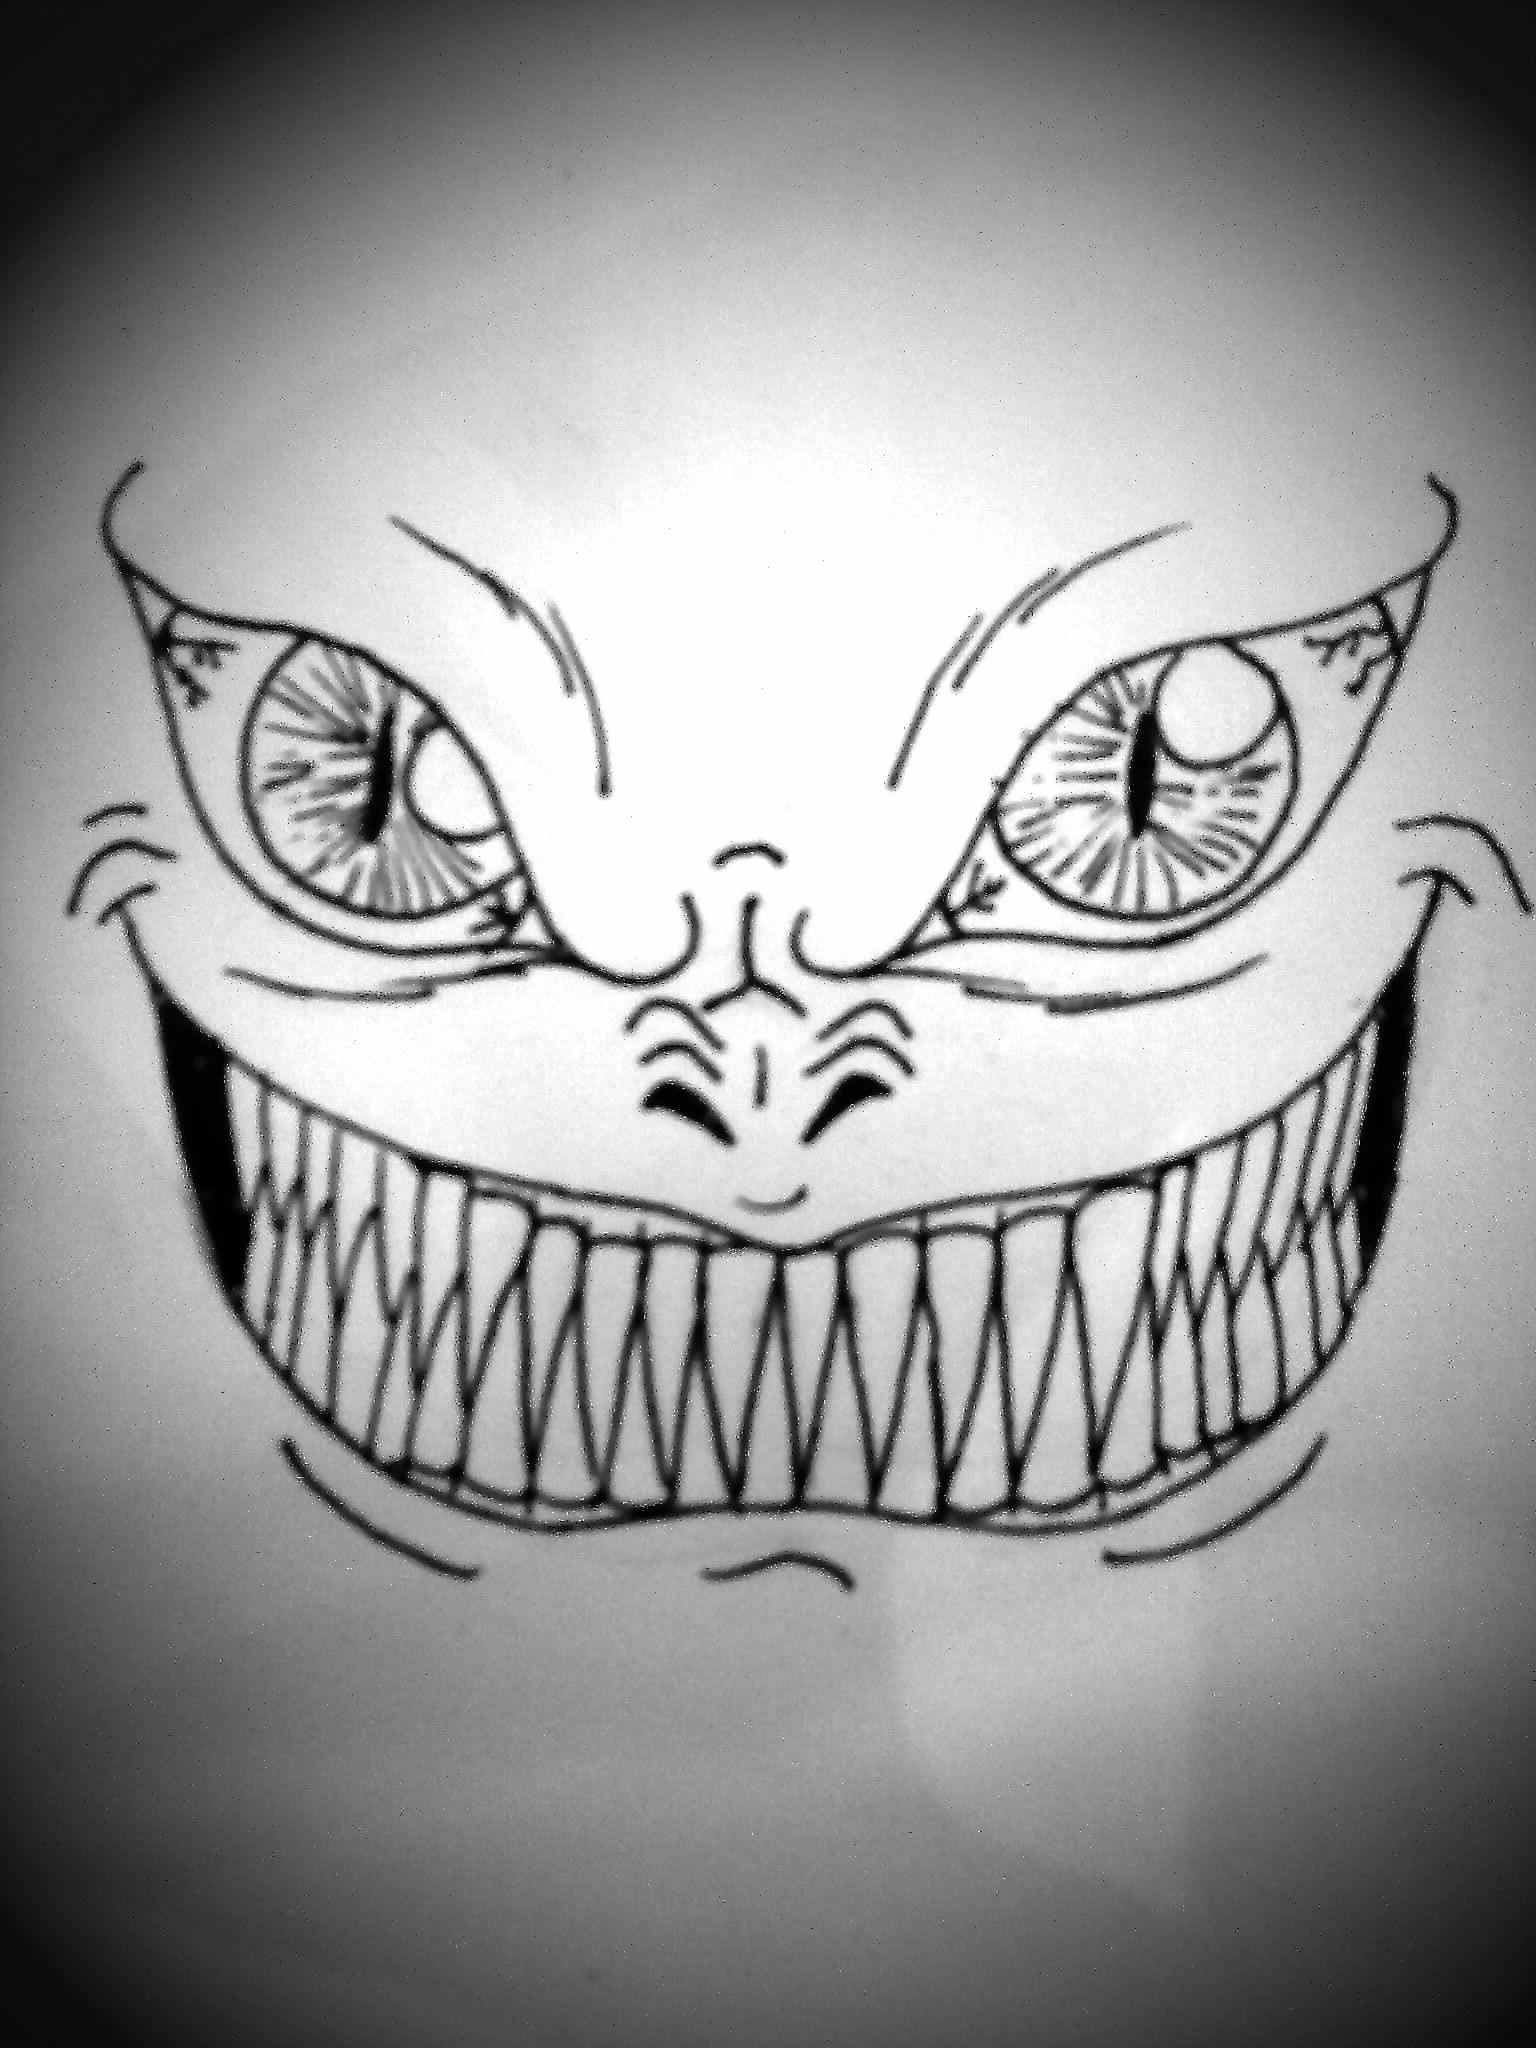 Drawing: scary face | Scary drawings, Face drawing, Smile ...